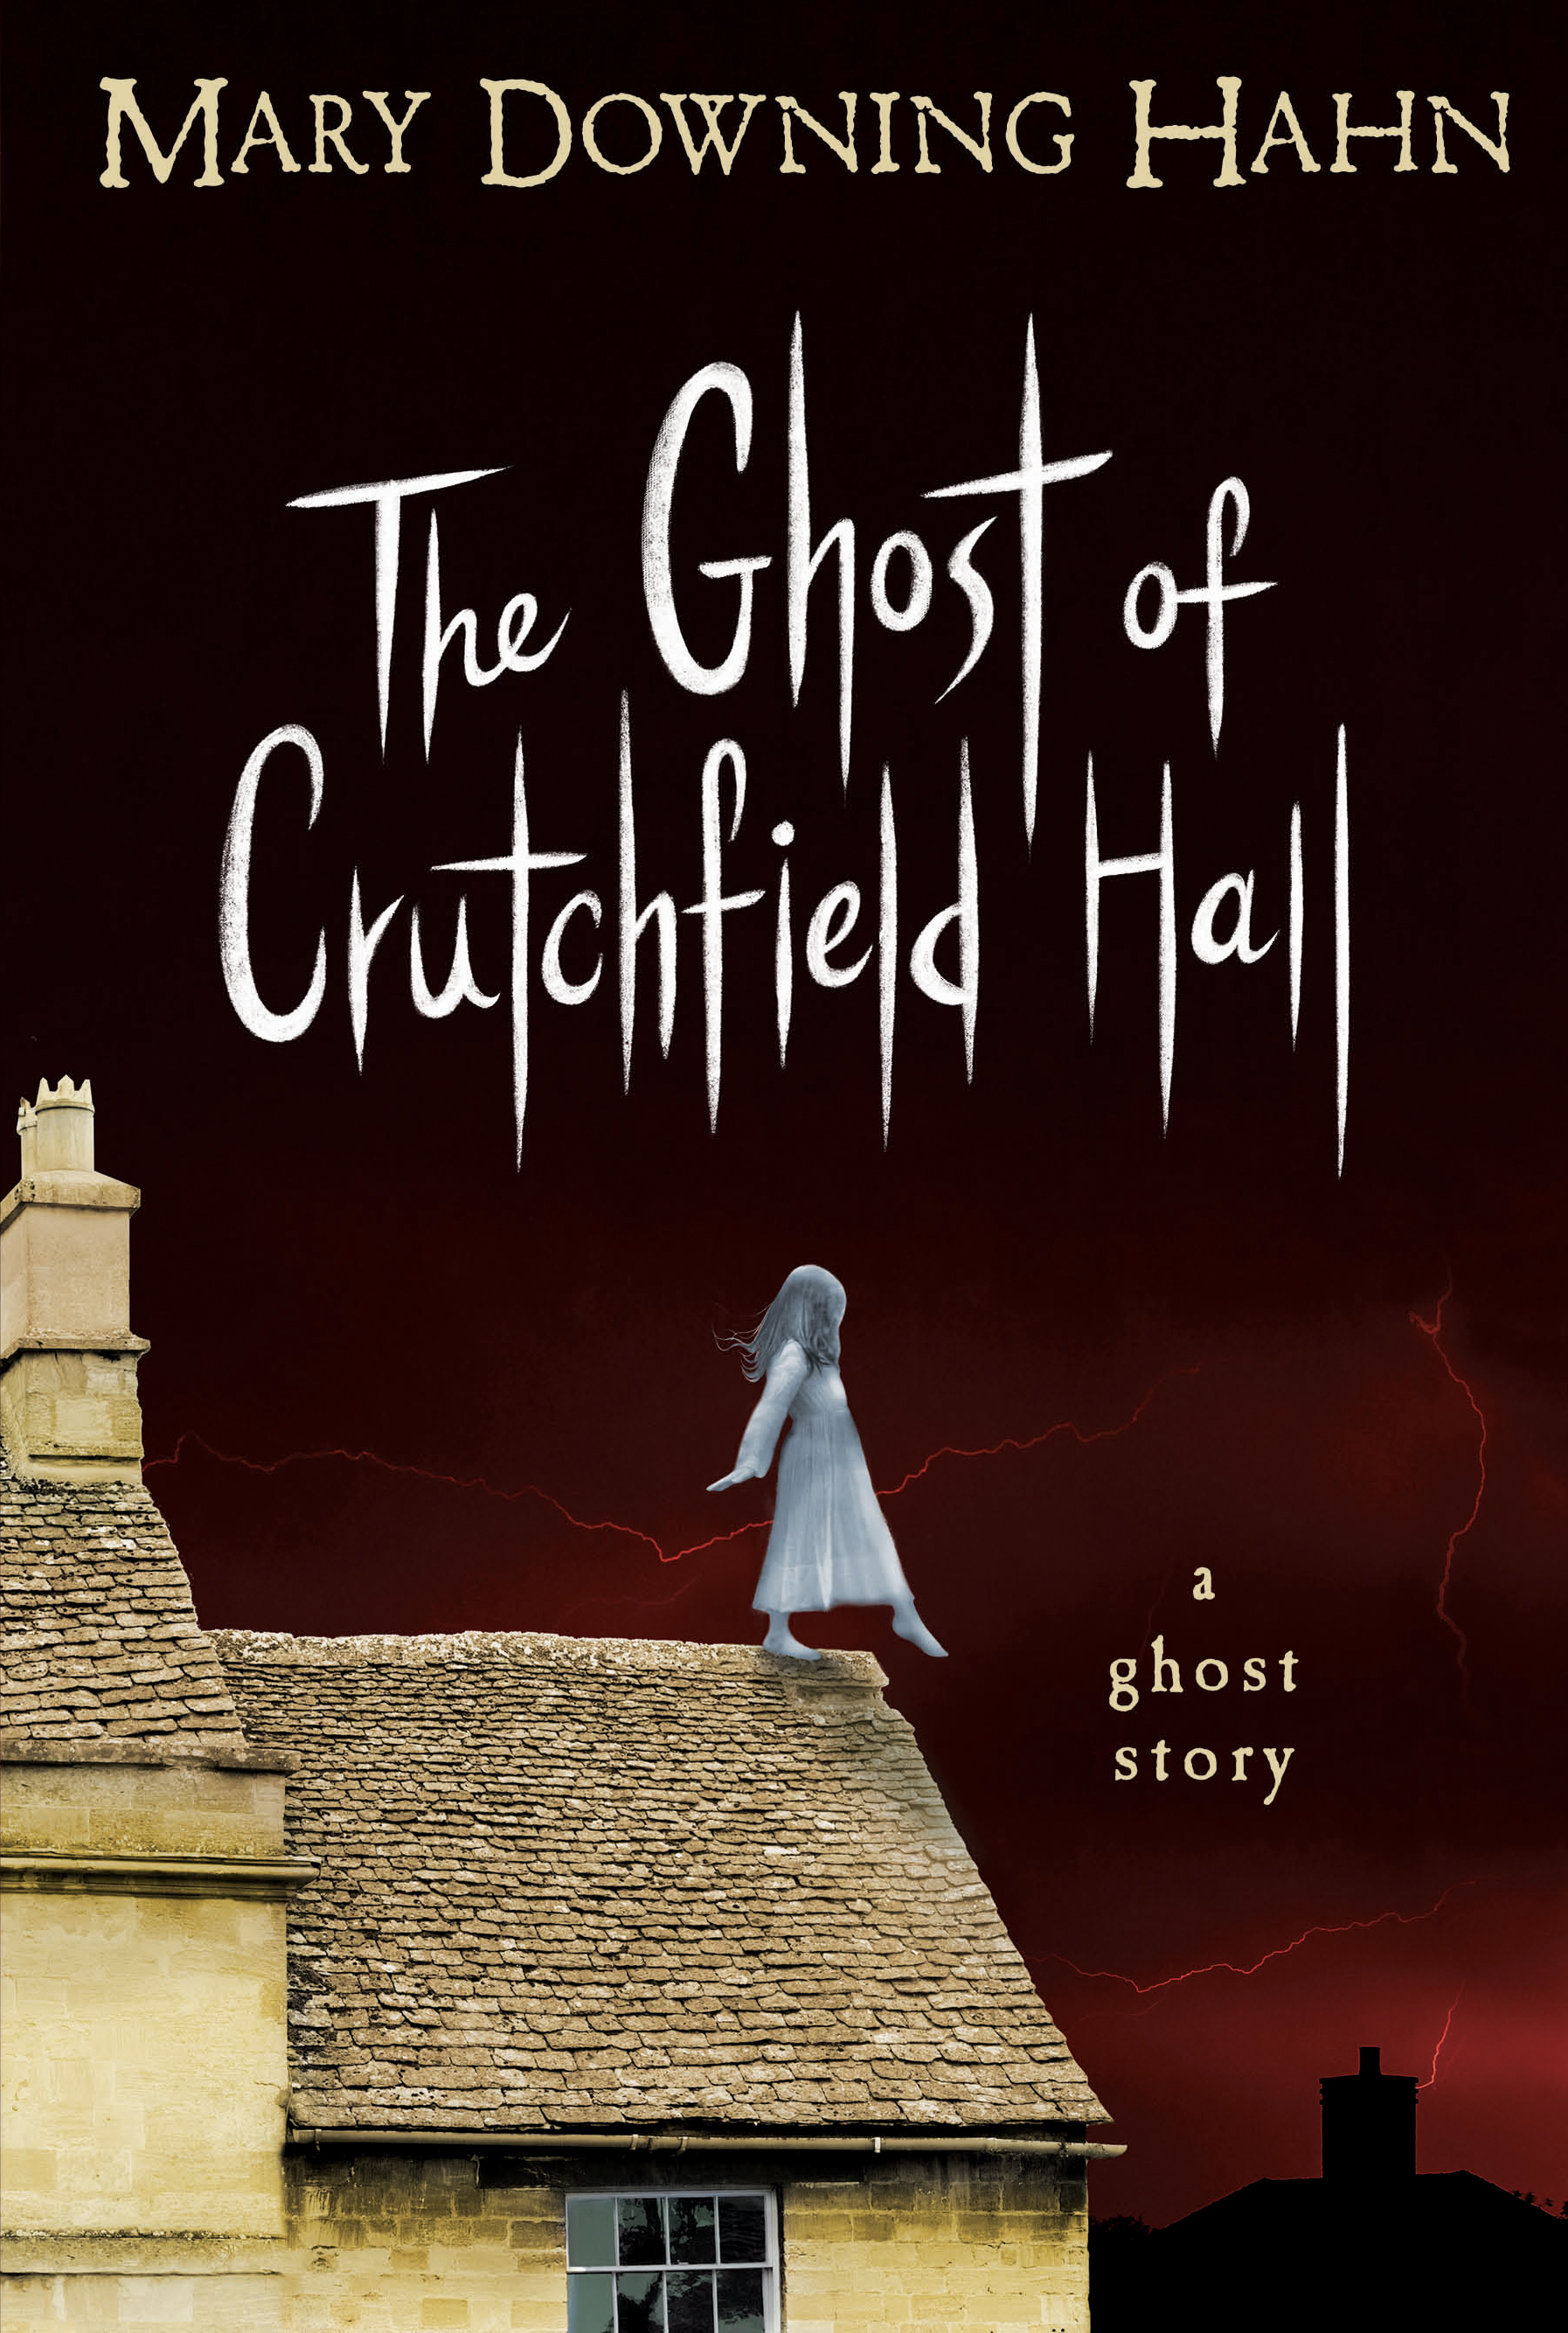 The Ghost of Crutchfield Hall-9780547577159